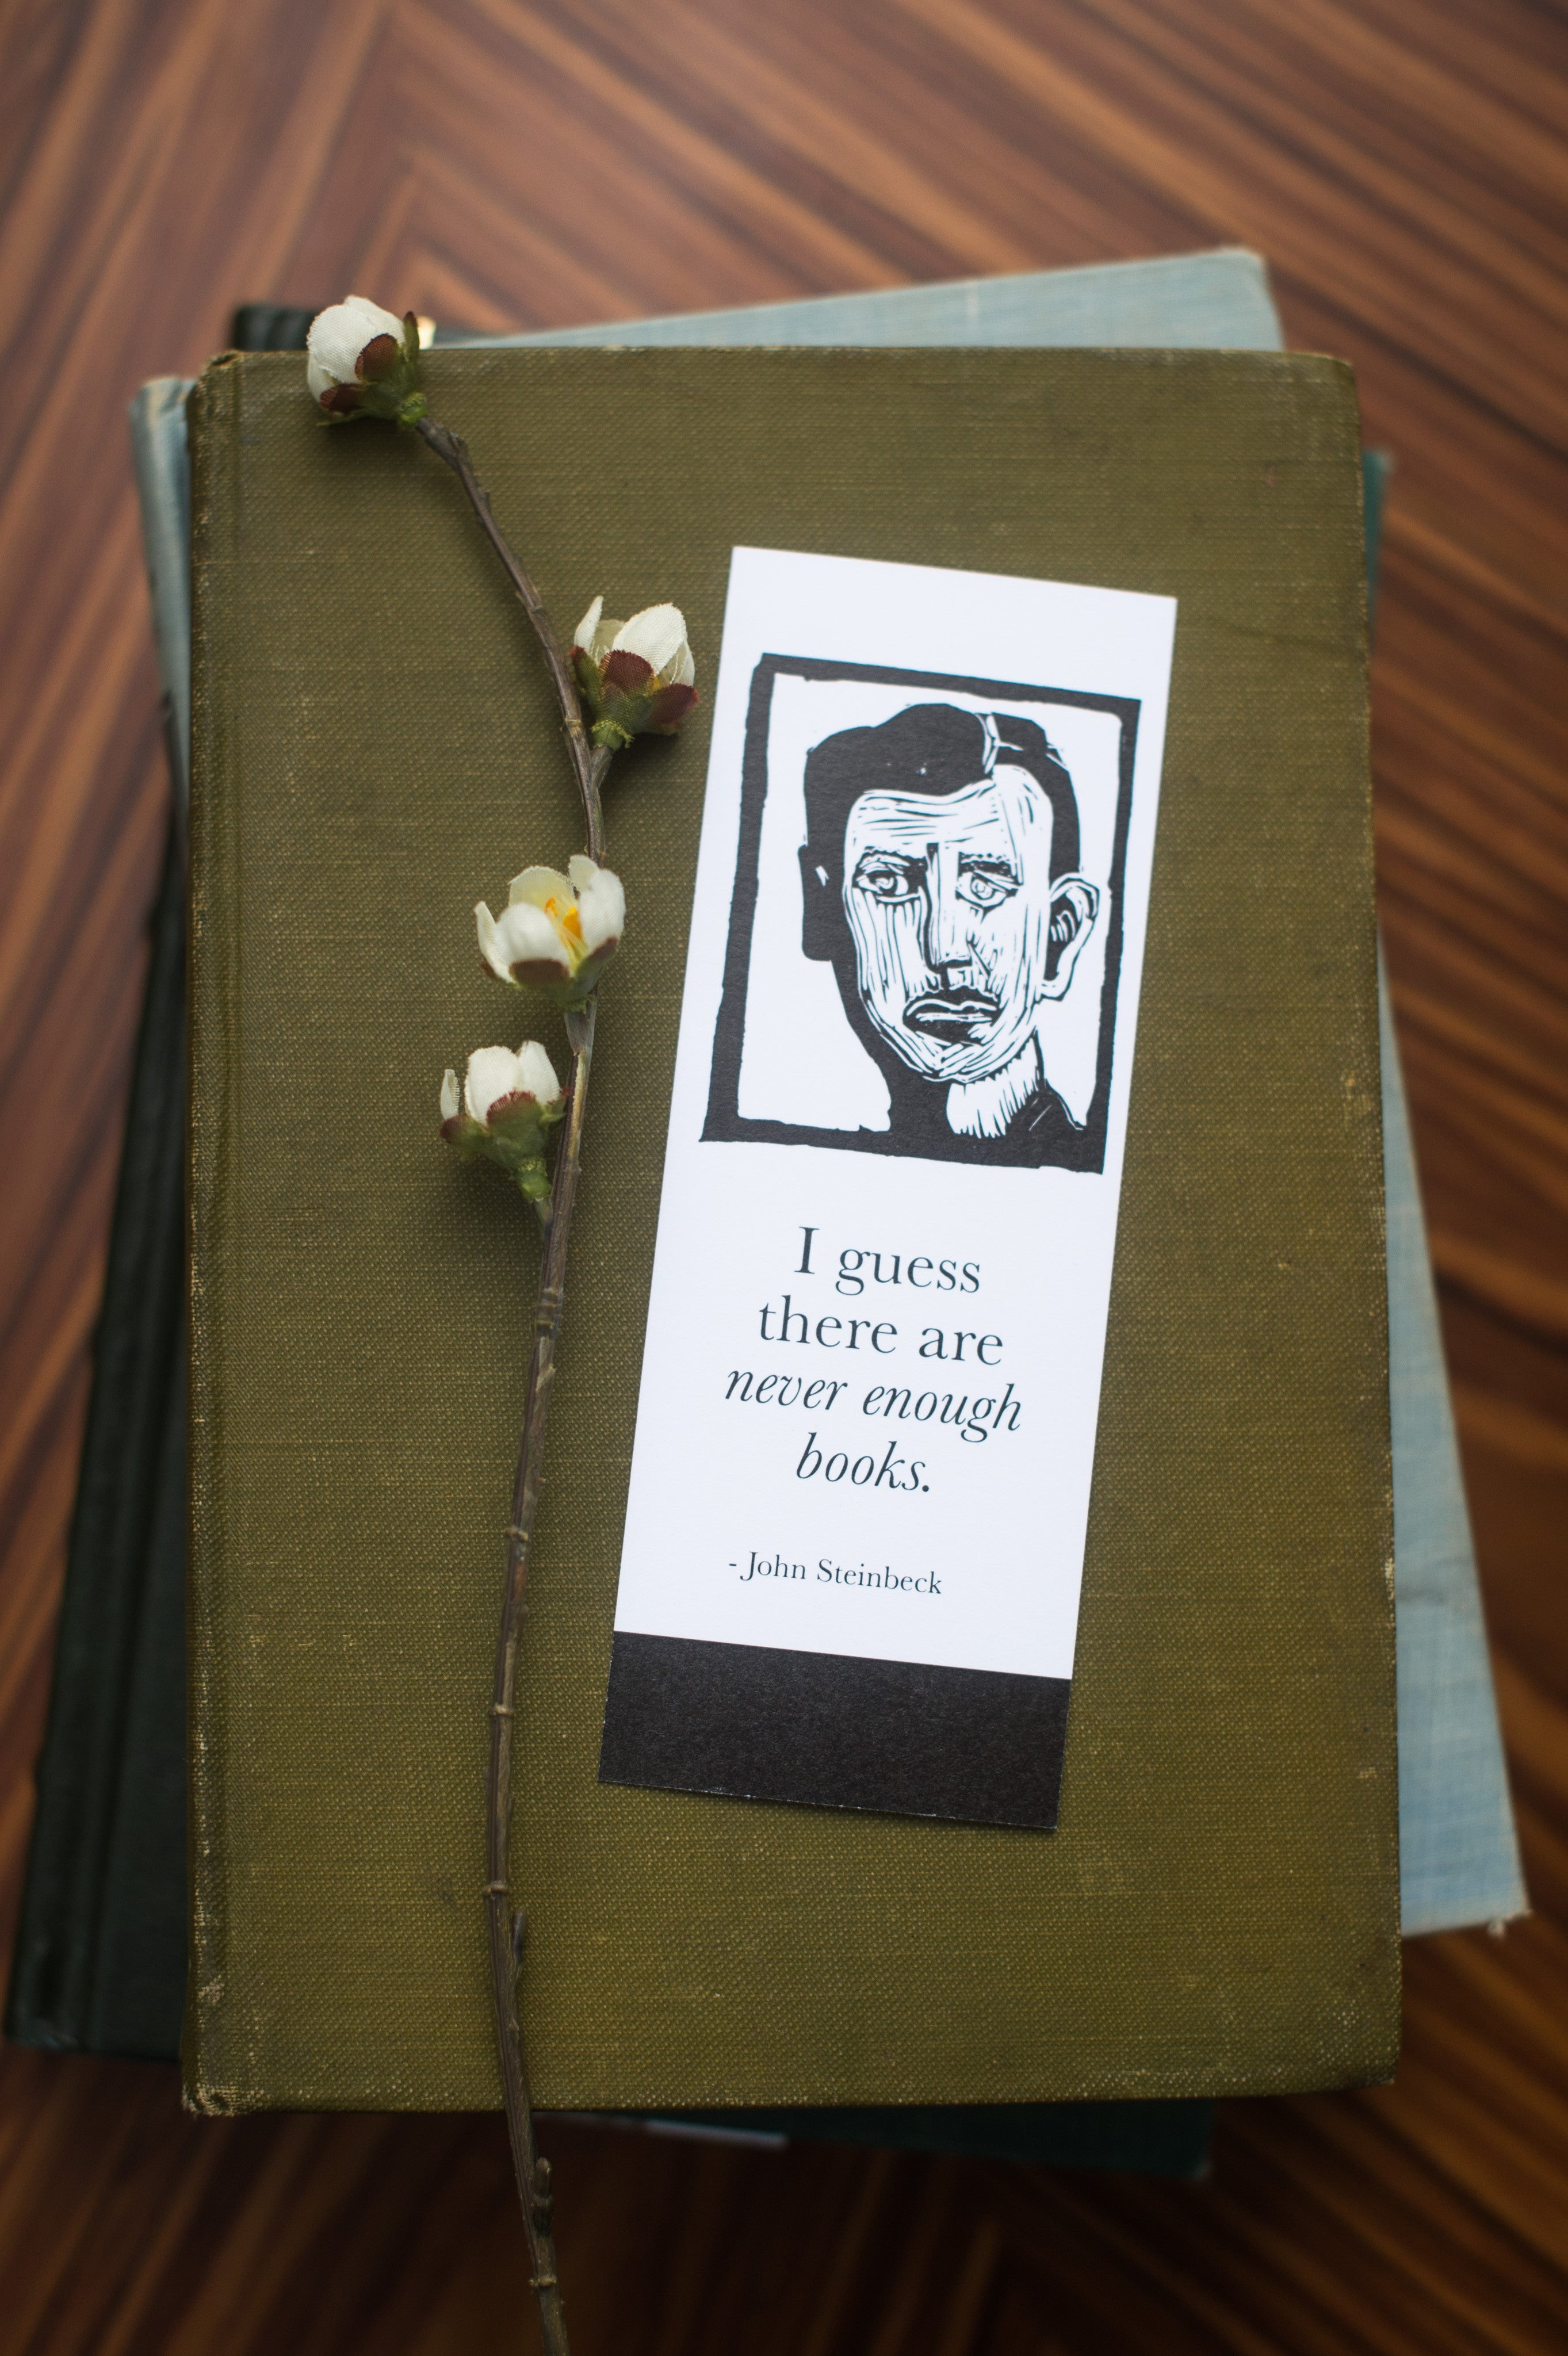 Second set of Bookmarks with Steinbeck and book Literary gifts by Eastgrove Studio